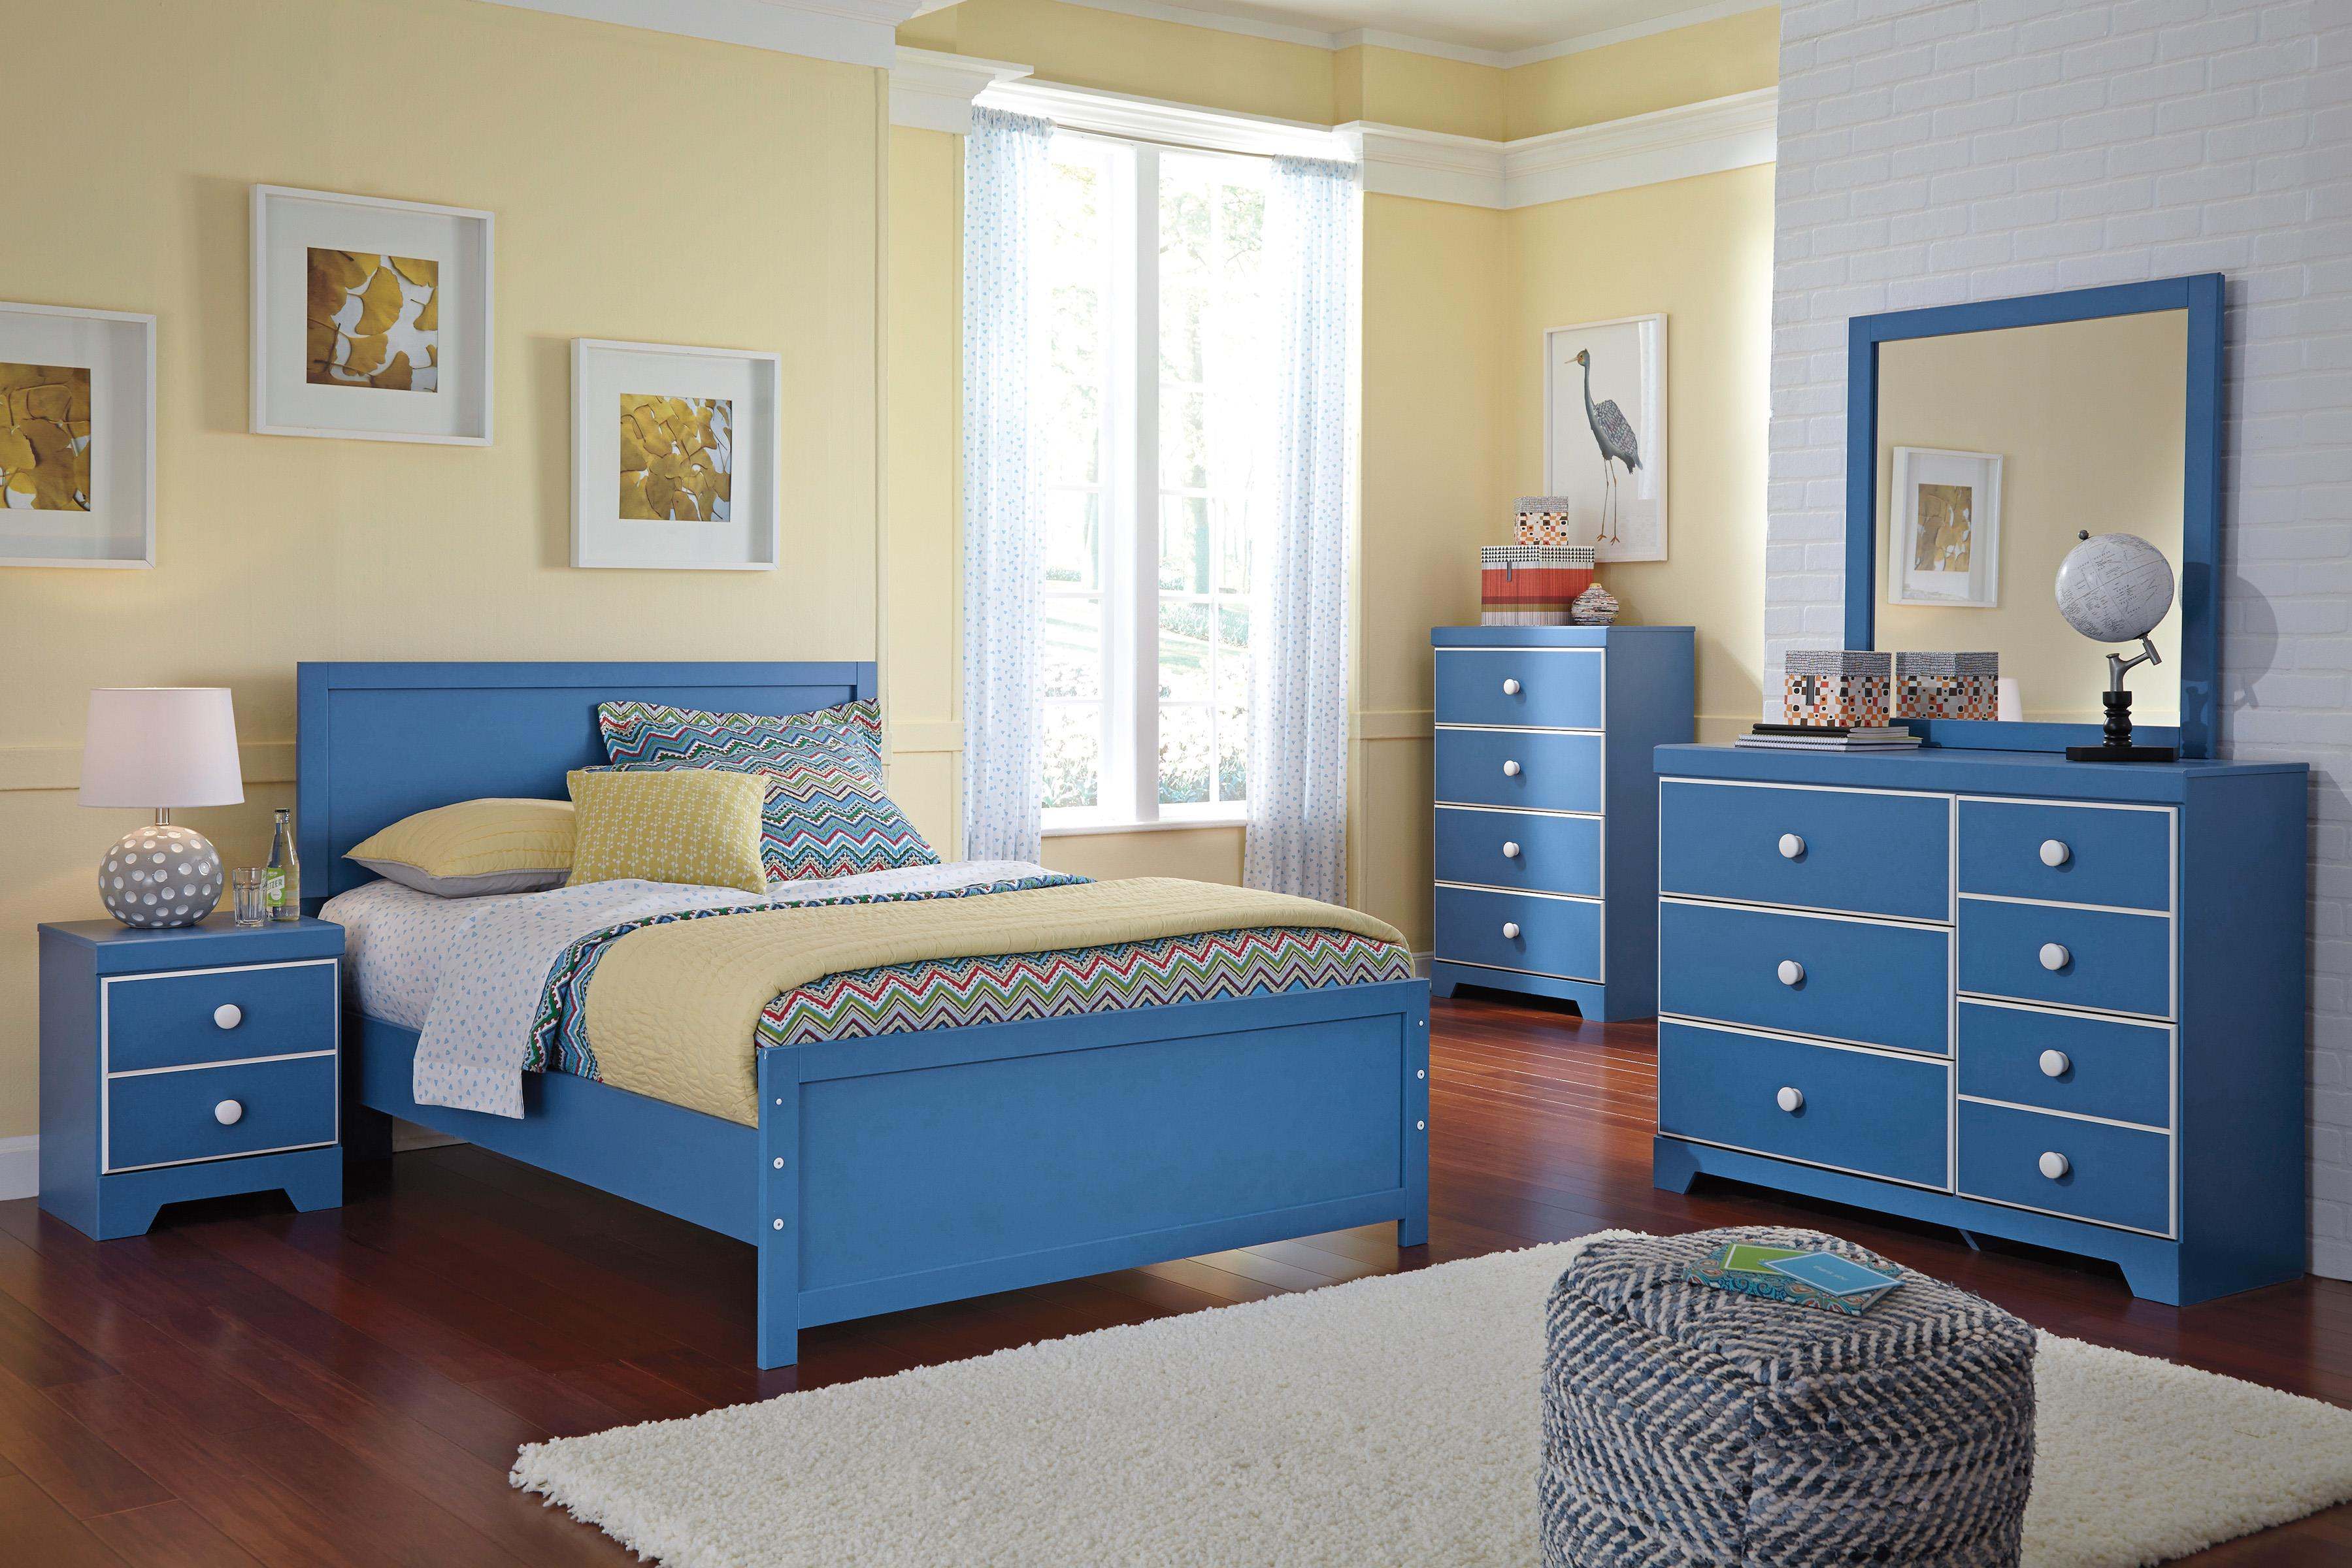 Signature Design by Ashley Bronilly Full Bedroom Group - Item Number: B045 F Bedroom Group 1